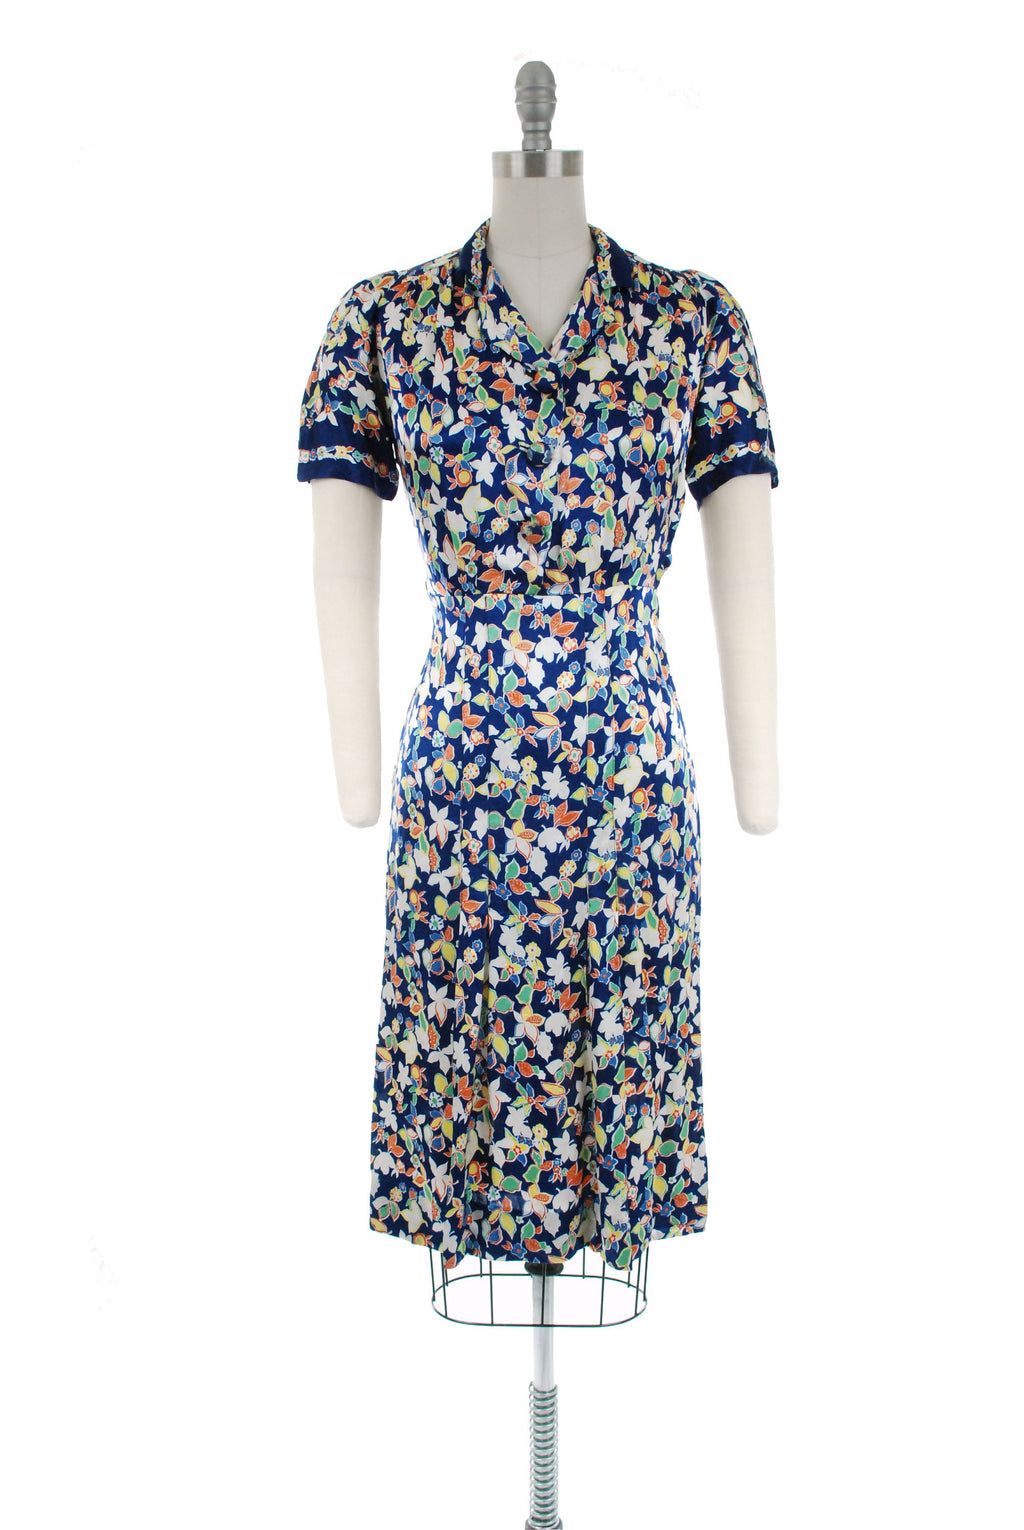 Vintage 1930s Dress - Sensational Navy Blue Printed Charmeuse Satin 30s Day Dress with Bright Spring Colors and Matching Jacket